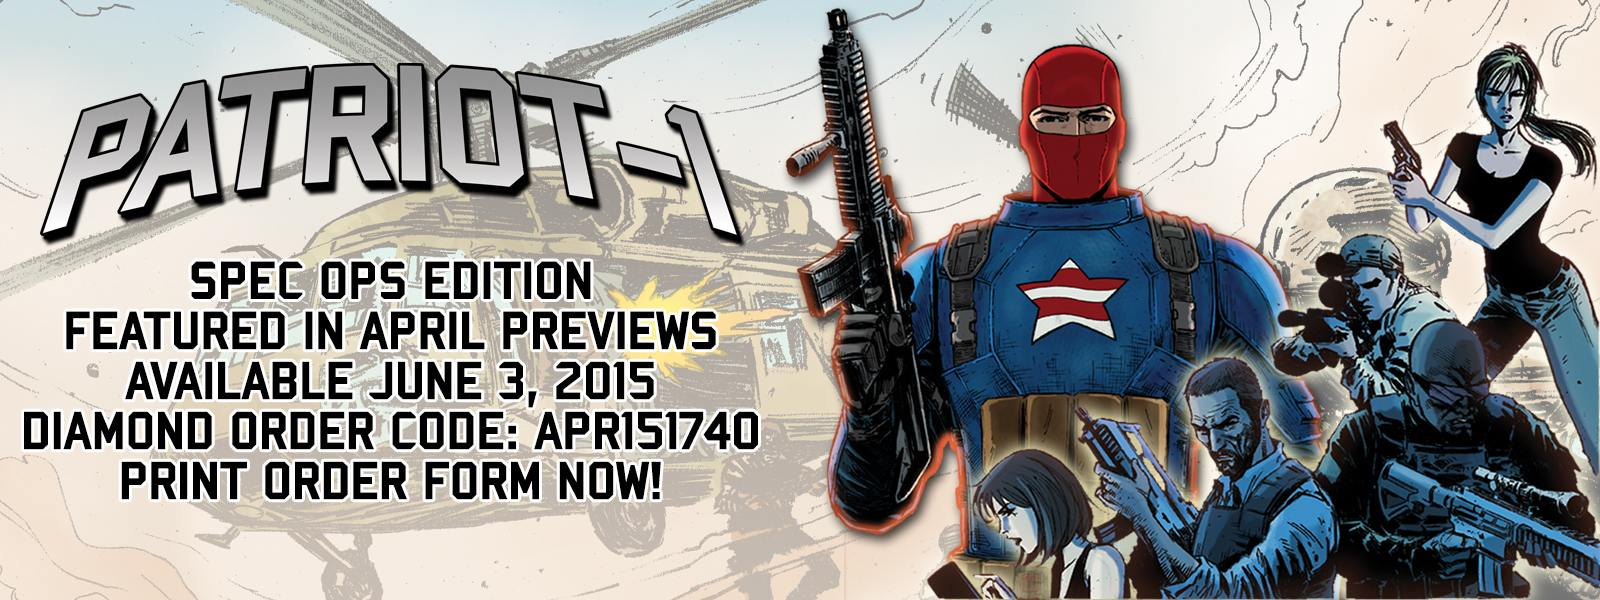 Patriot-1 Available June 3, 2015